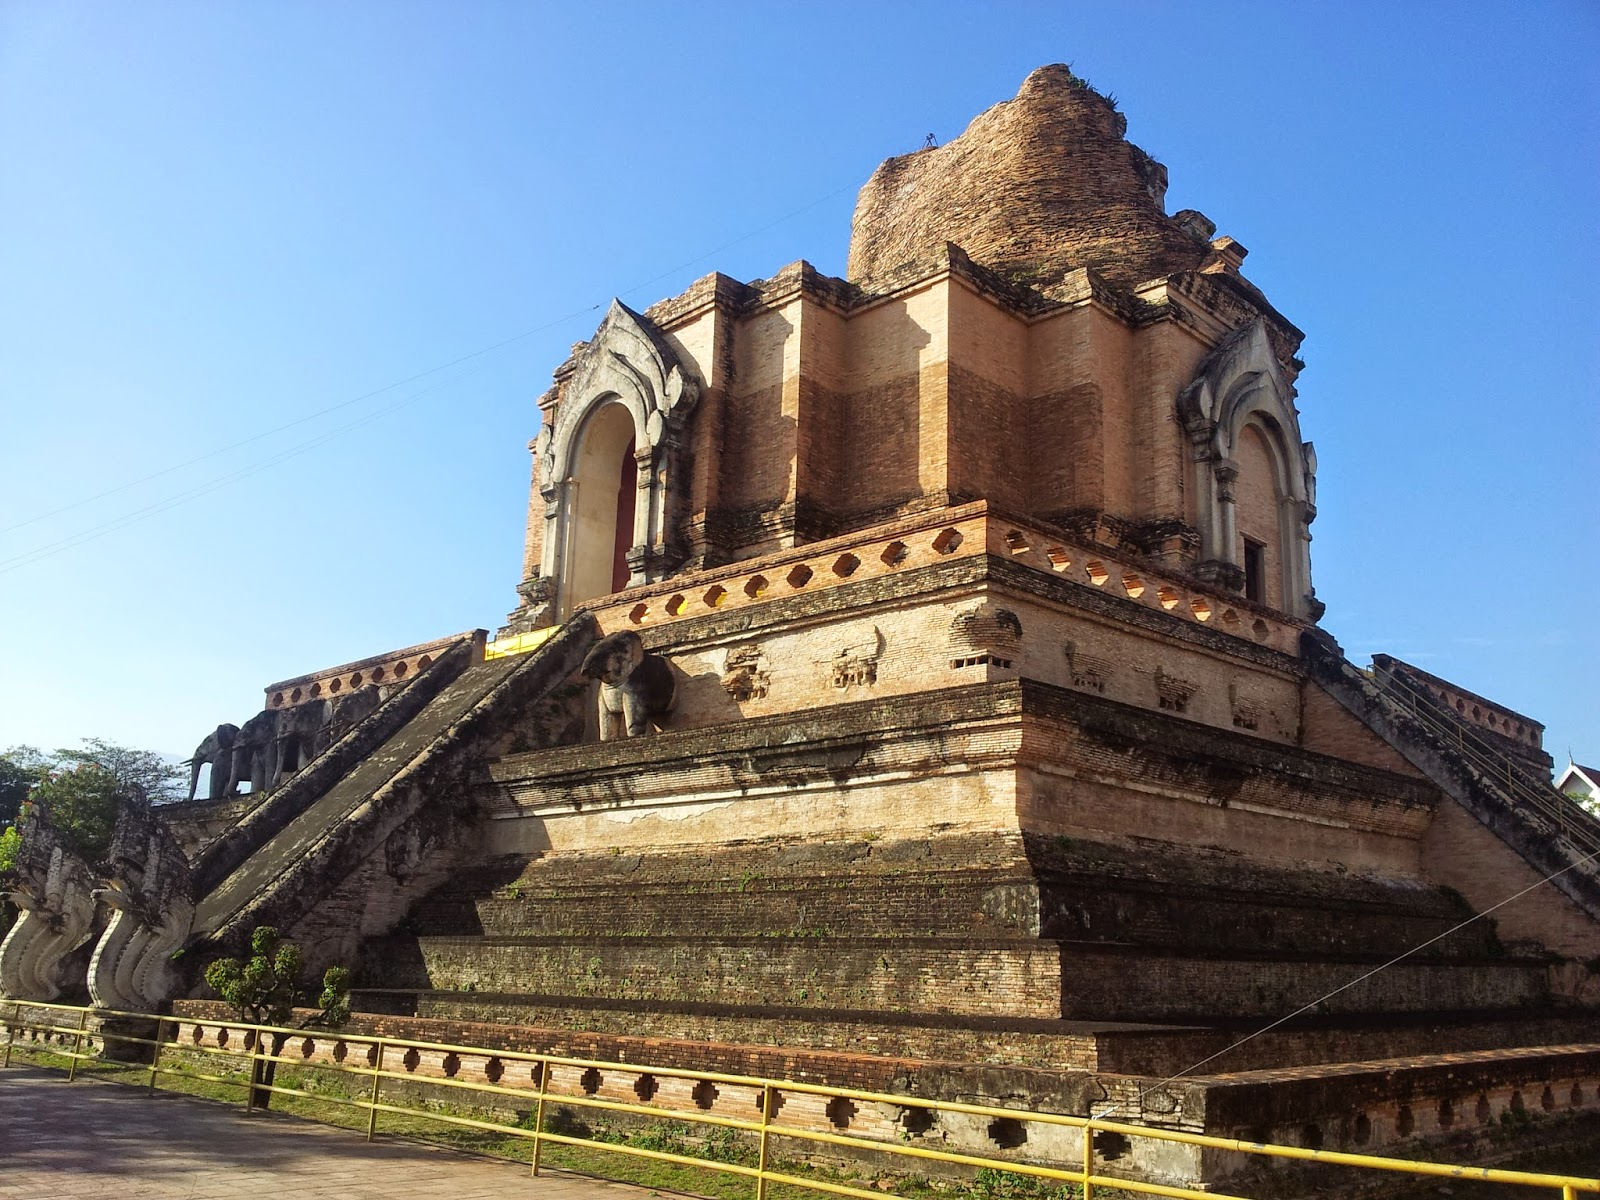 Wat Chedi Luang Entrance Fee Wat Chedi Luang Another Area